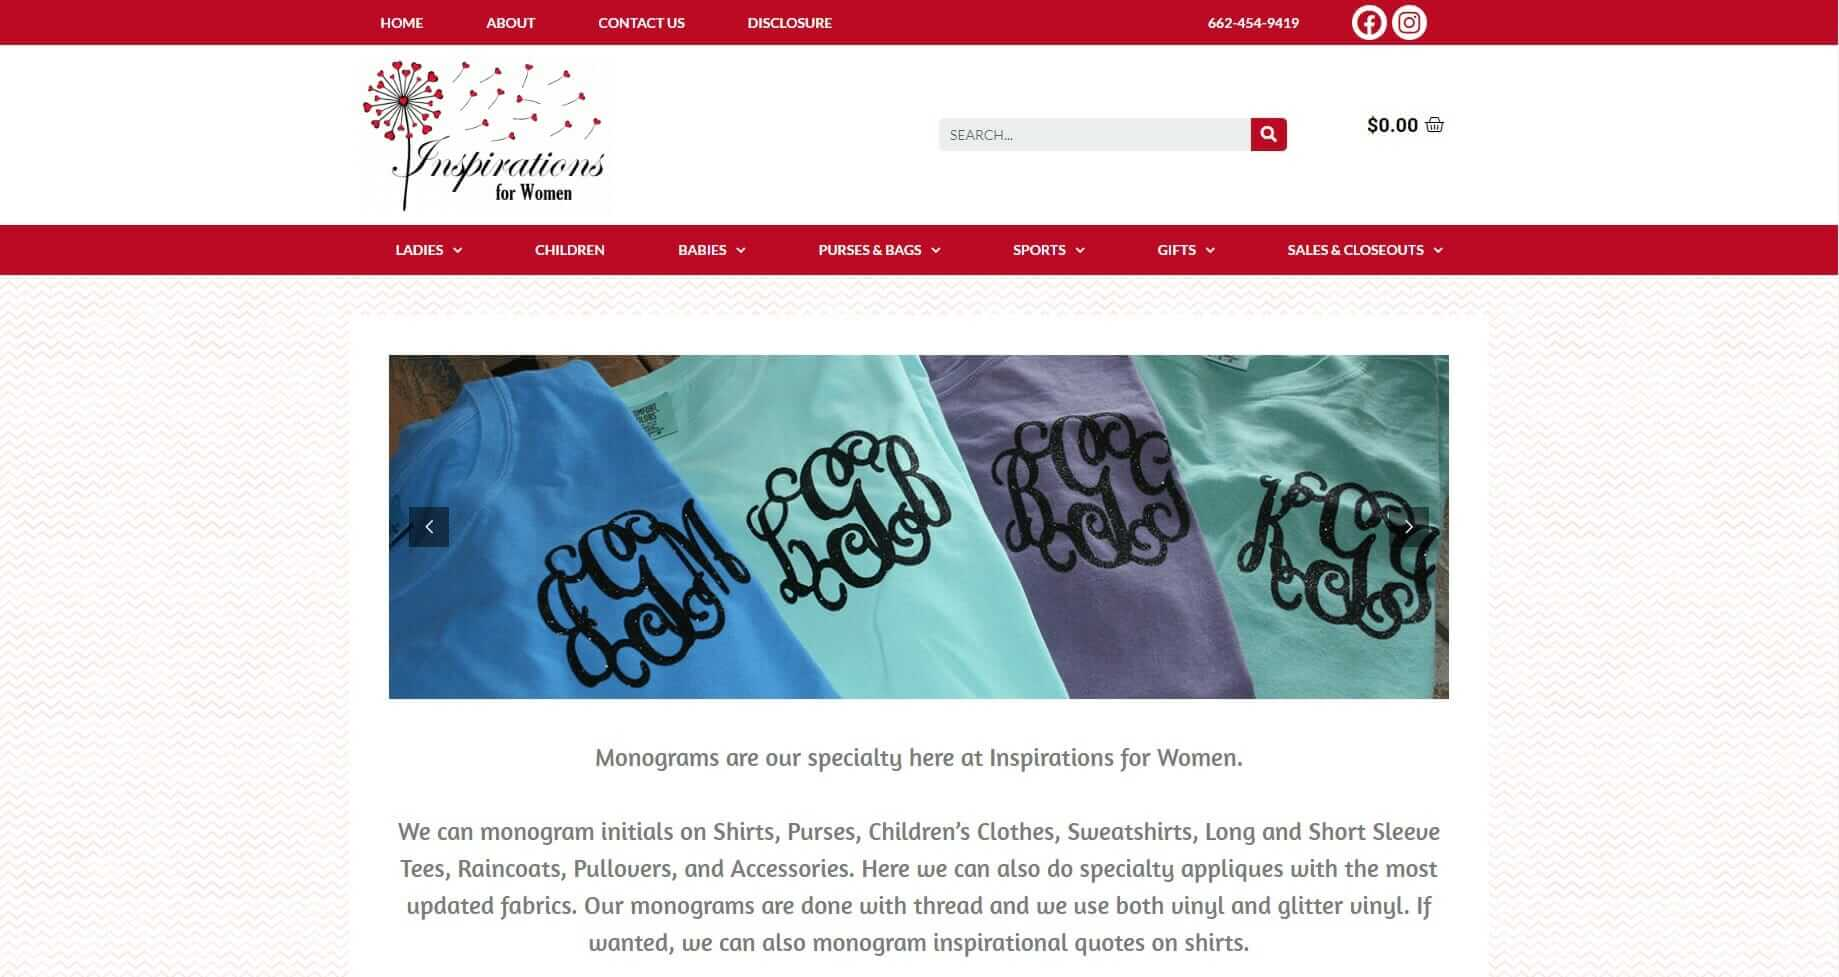 ecommerce website for monogramming company - Inspirations for Women.